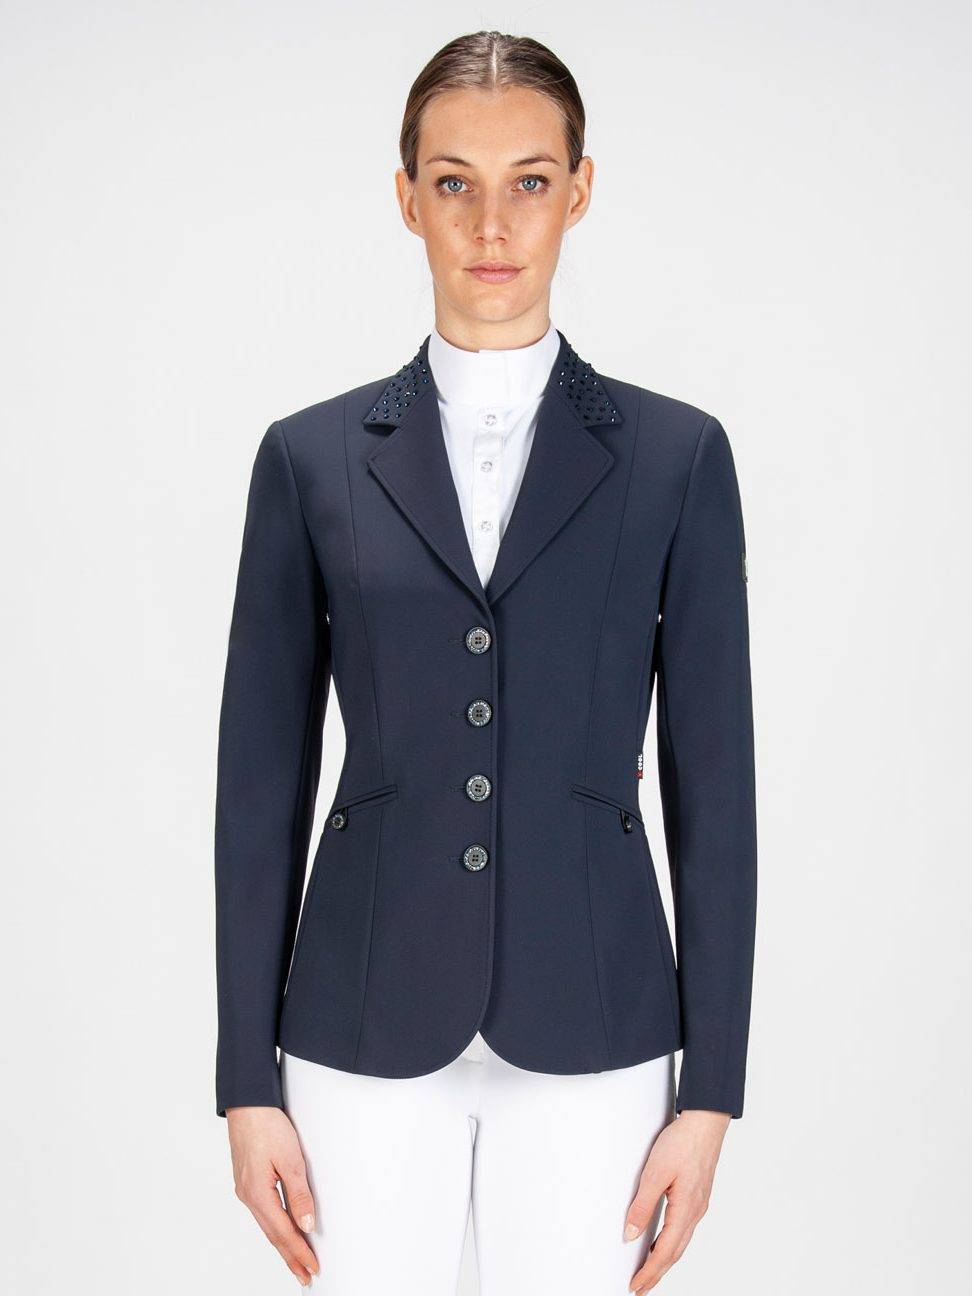 GIOIA - Women's Show Coat w/ Crystals 1